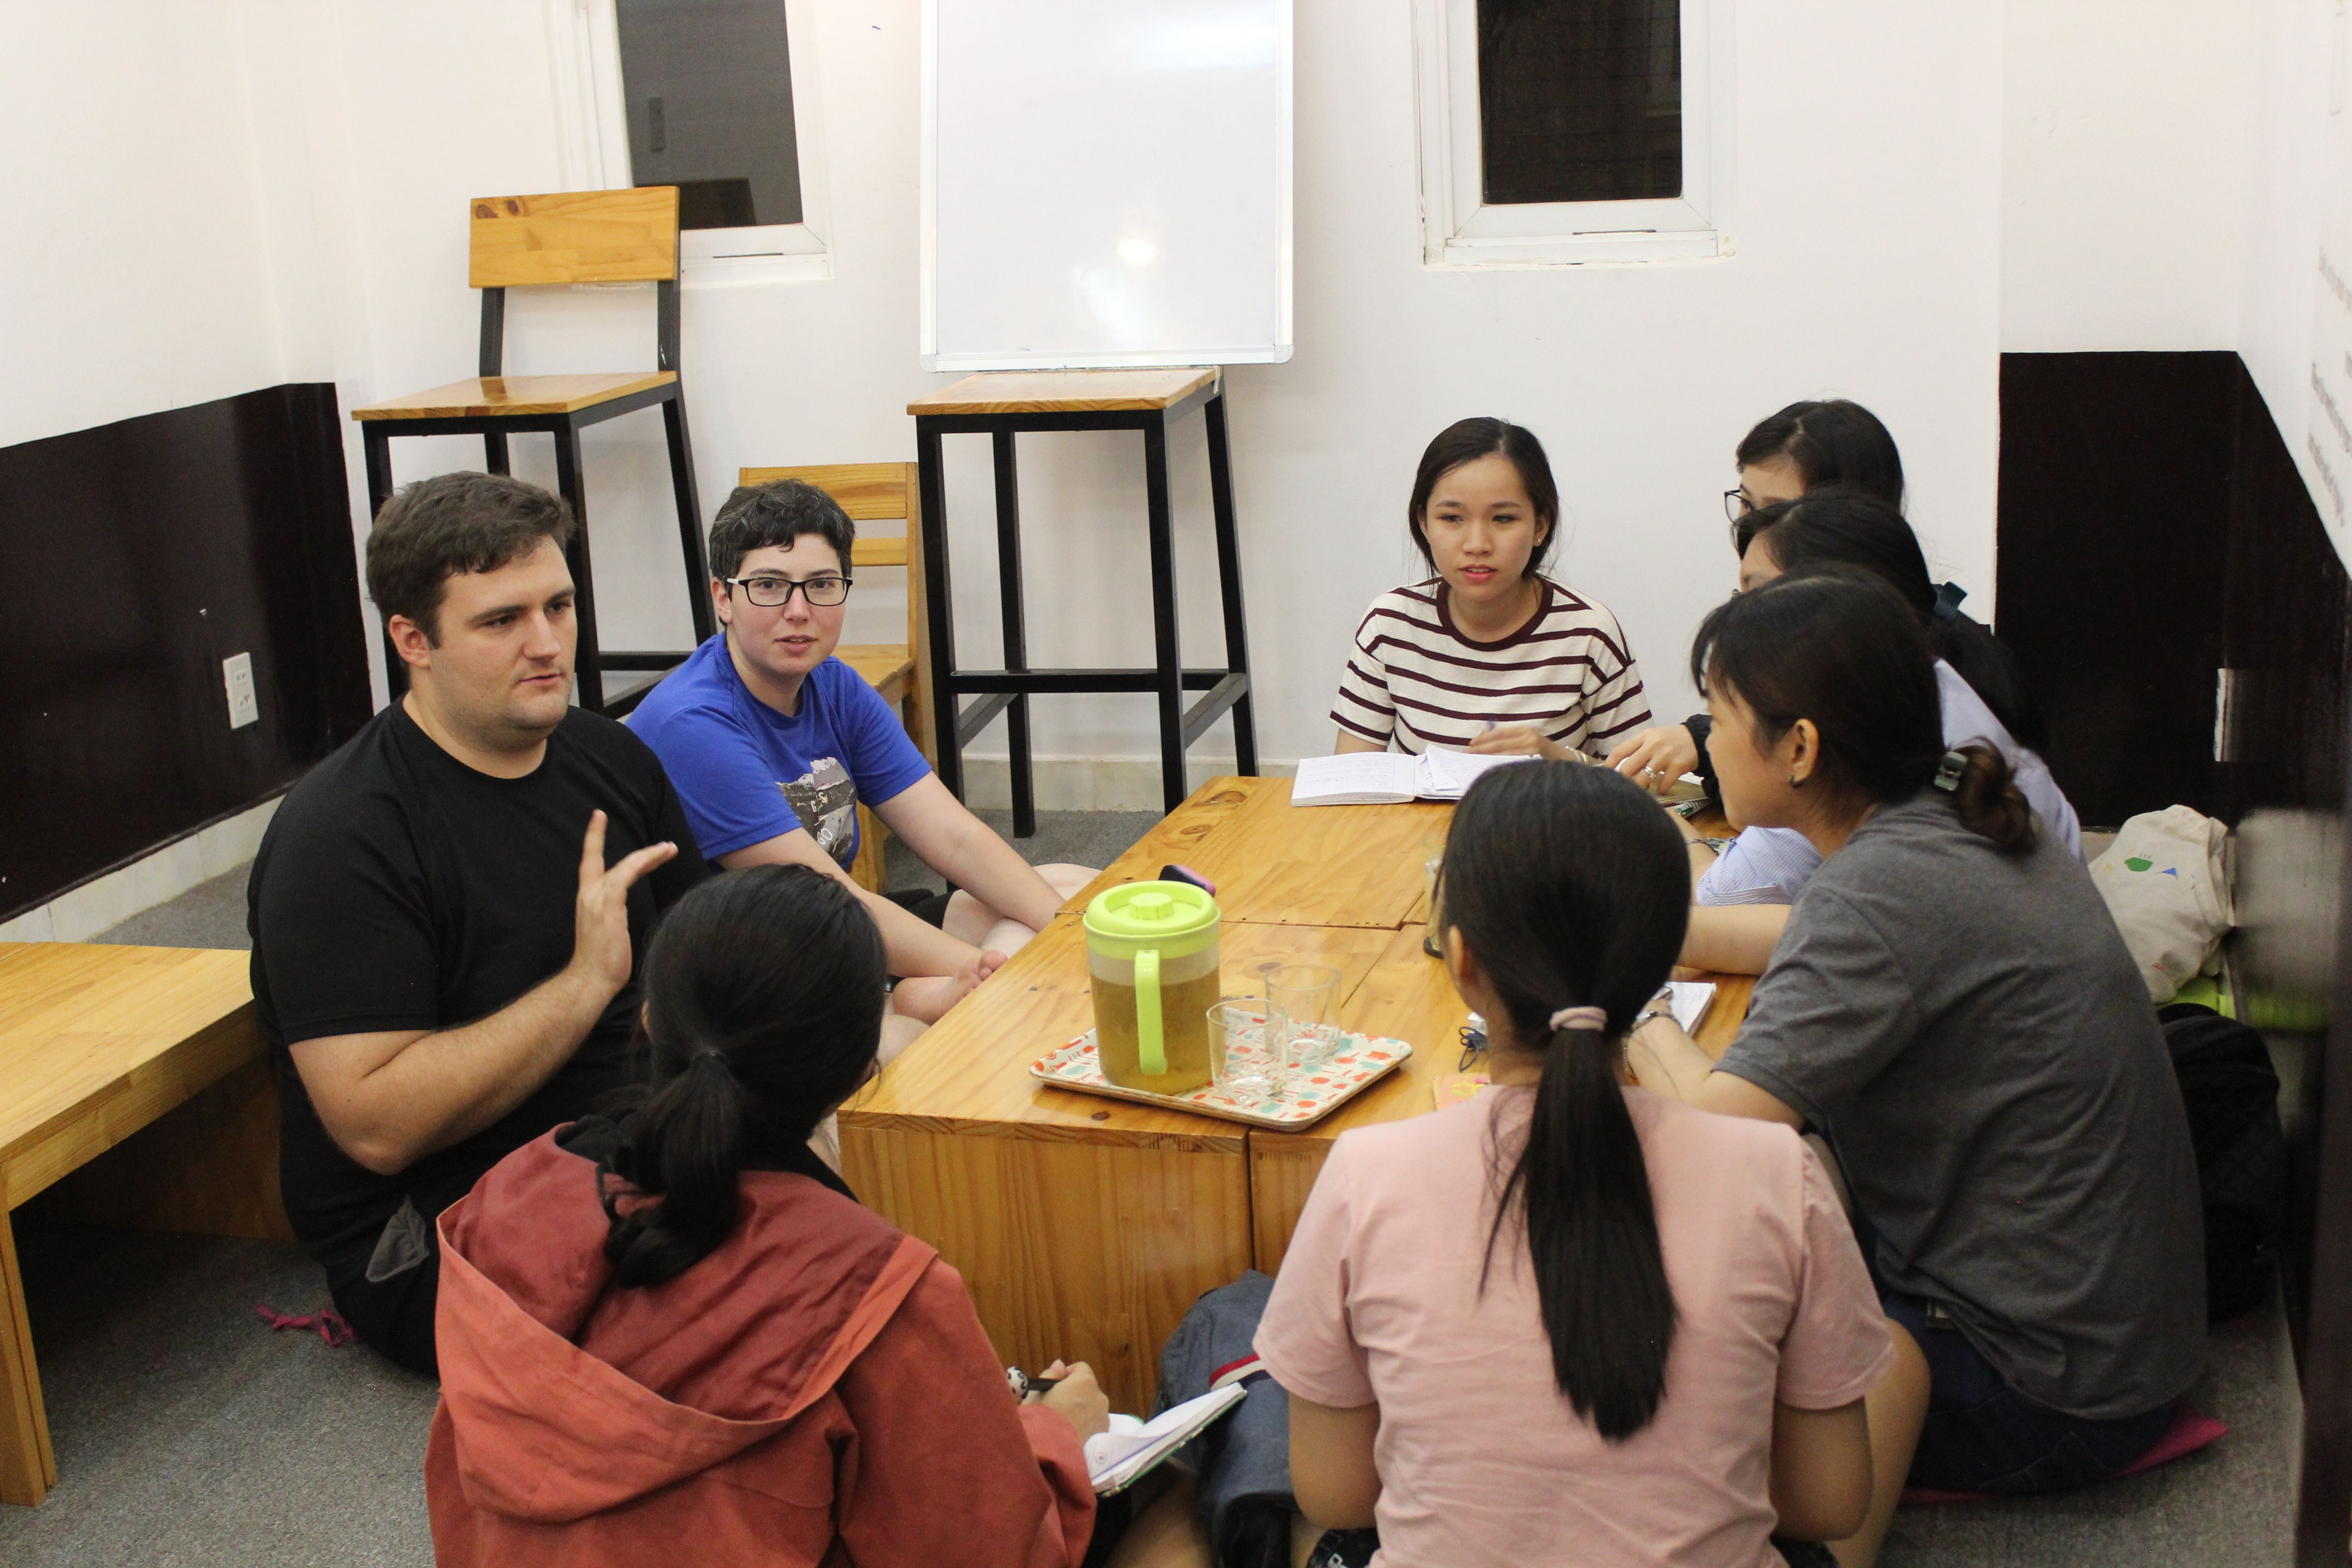 Meet up & hang out with locals - HCMC